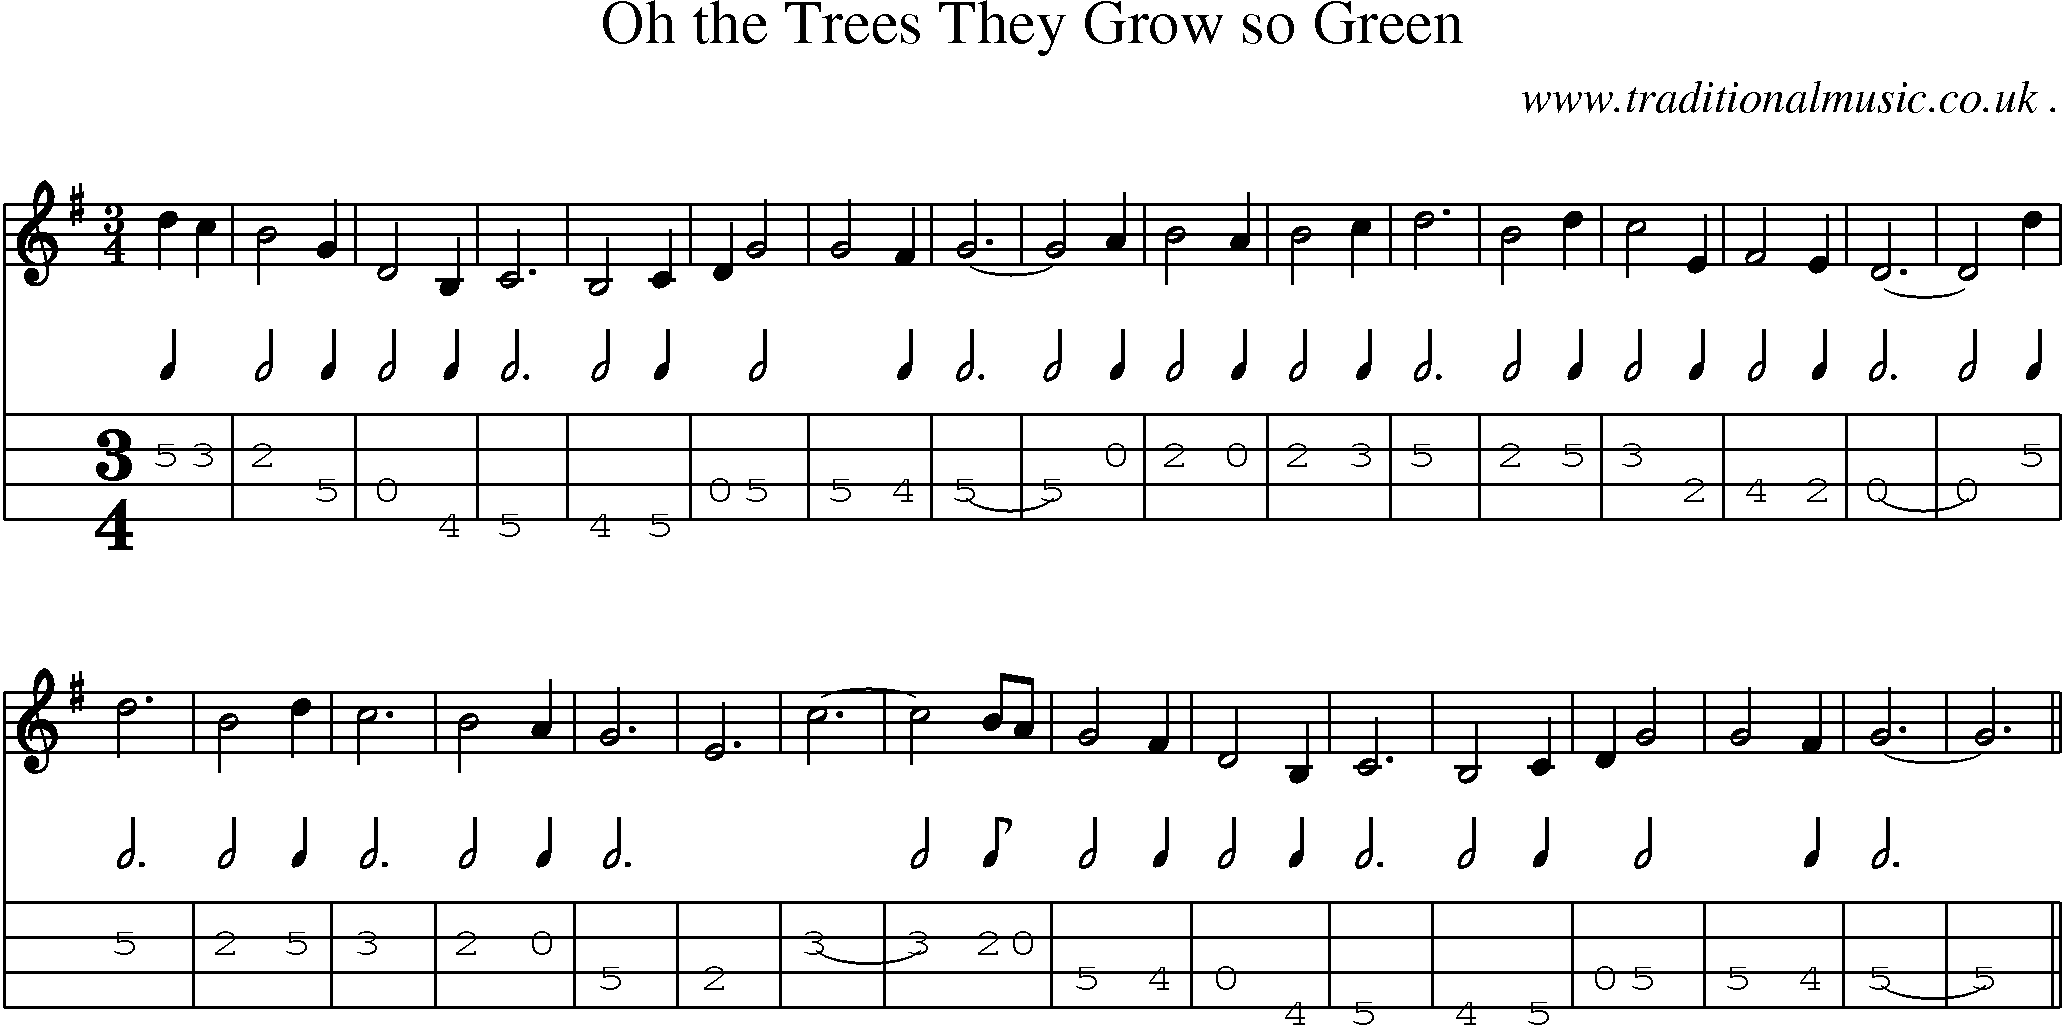 Folk and Traditional Music, Sheet-Music, Mandolin tab, midi, mp3 and PDF for: Oh The Trees They ...